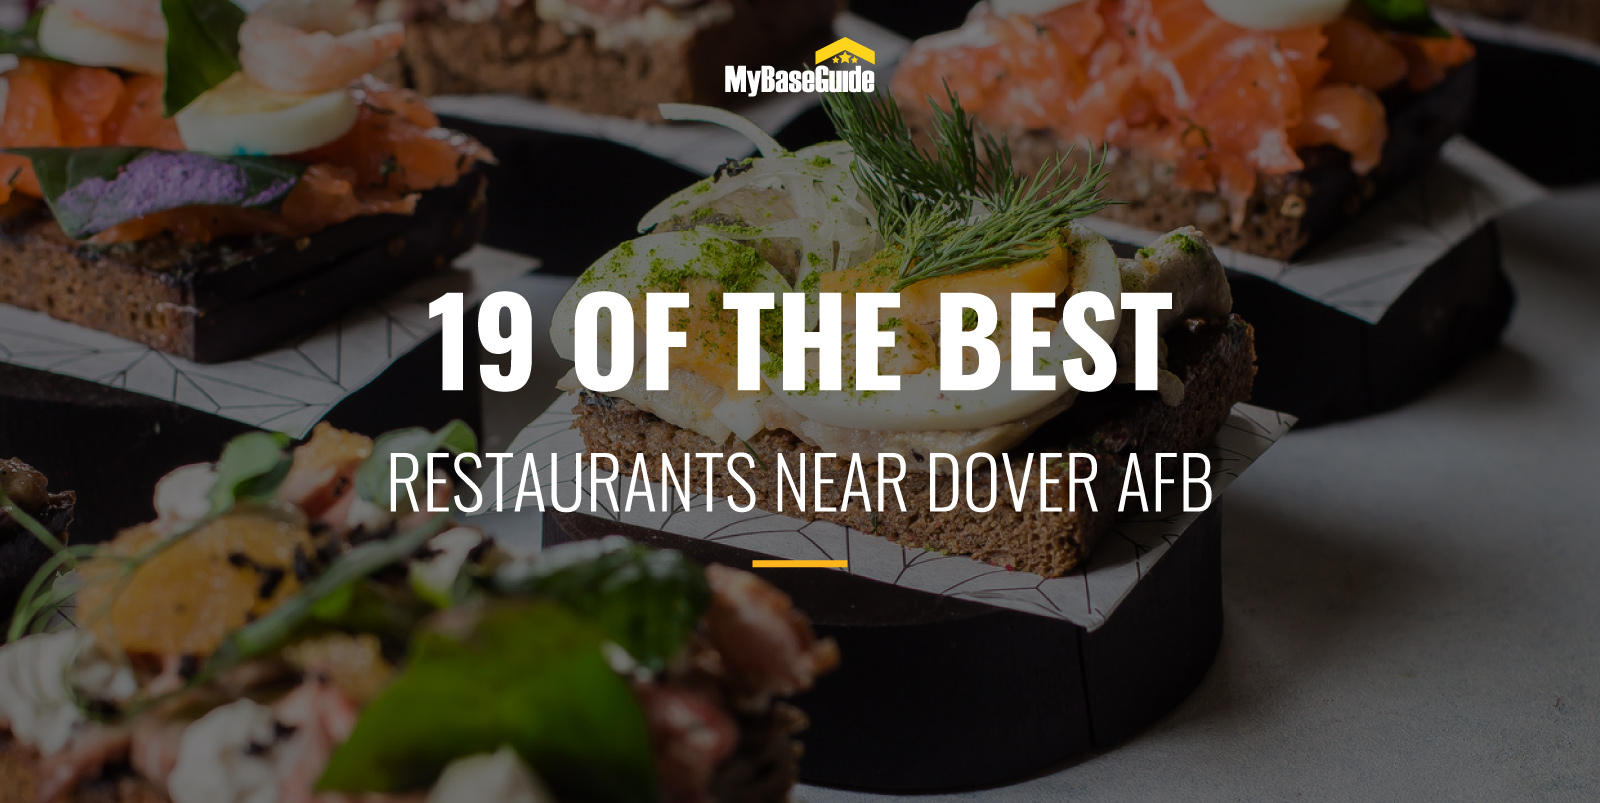 19 of the Best Restaurants Near Dover AFB